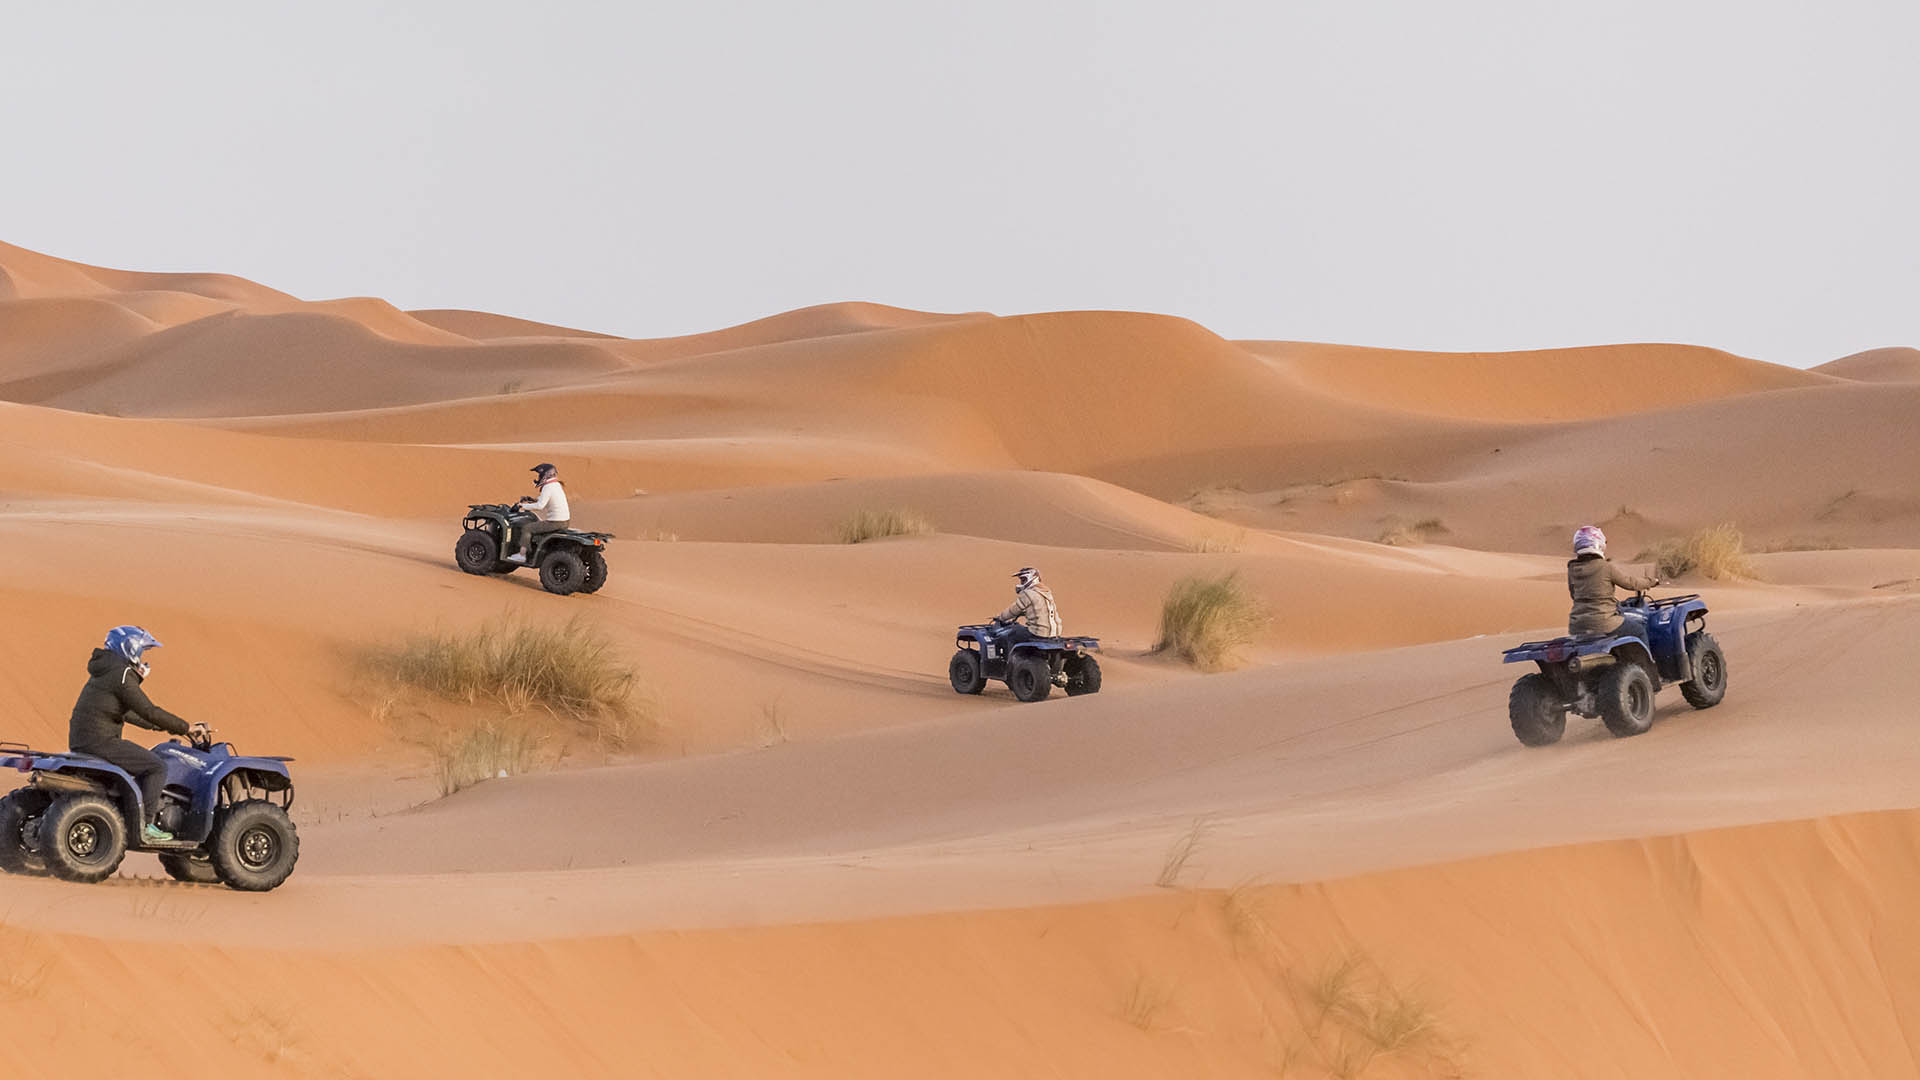 Desert Trip Adventure Holidays in Morocco are available year round and can be experience by 4x4 Off road, Desert Quad or Camel Trek in the Erg Chebbi Dunes.